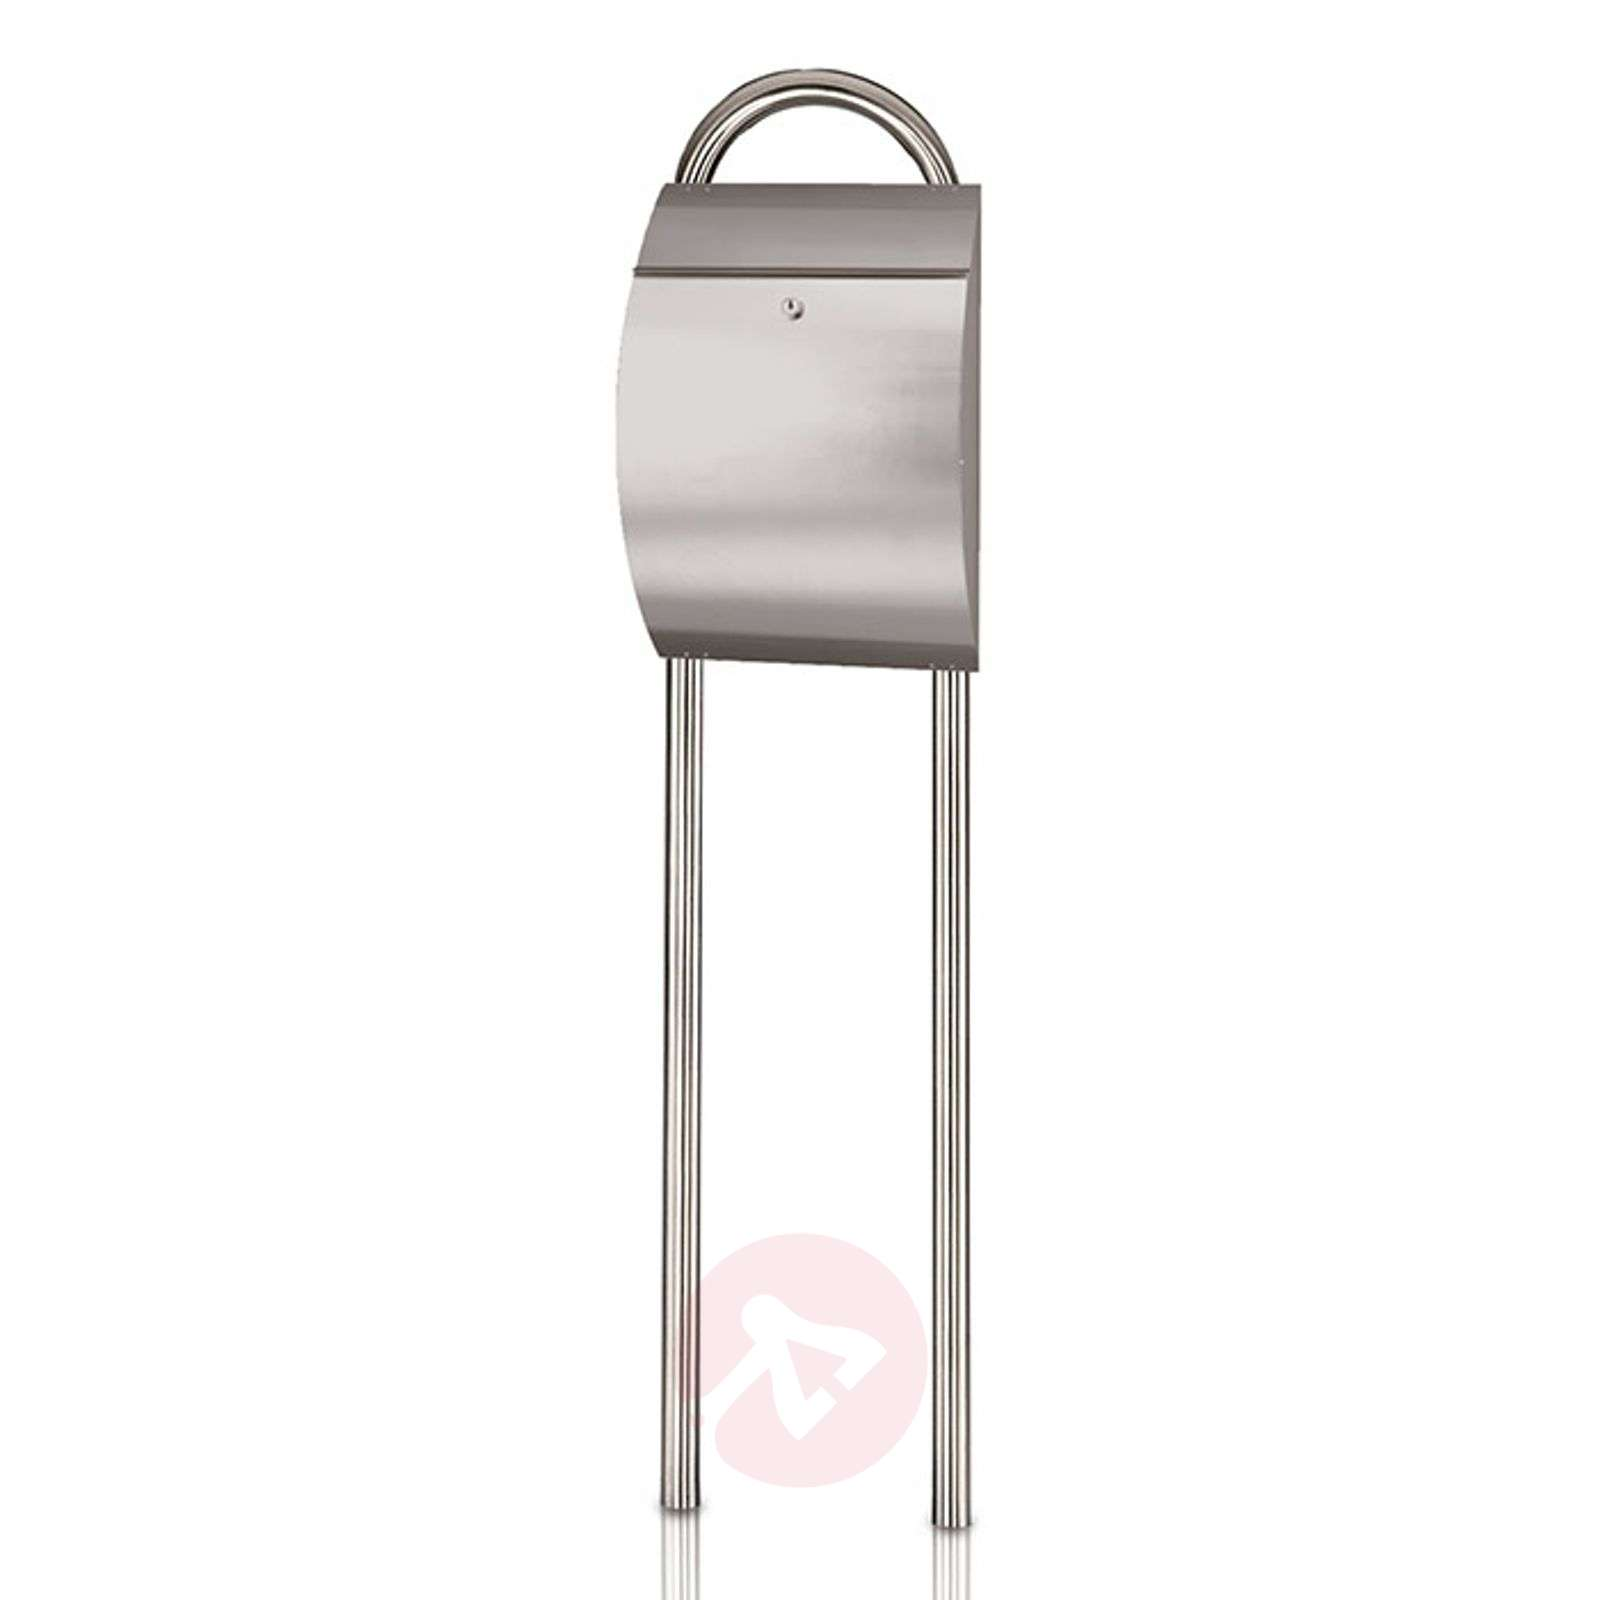 Letterbox stand-4502216X-01